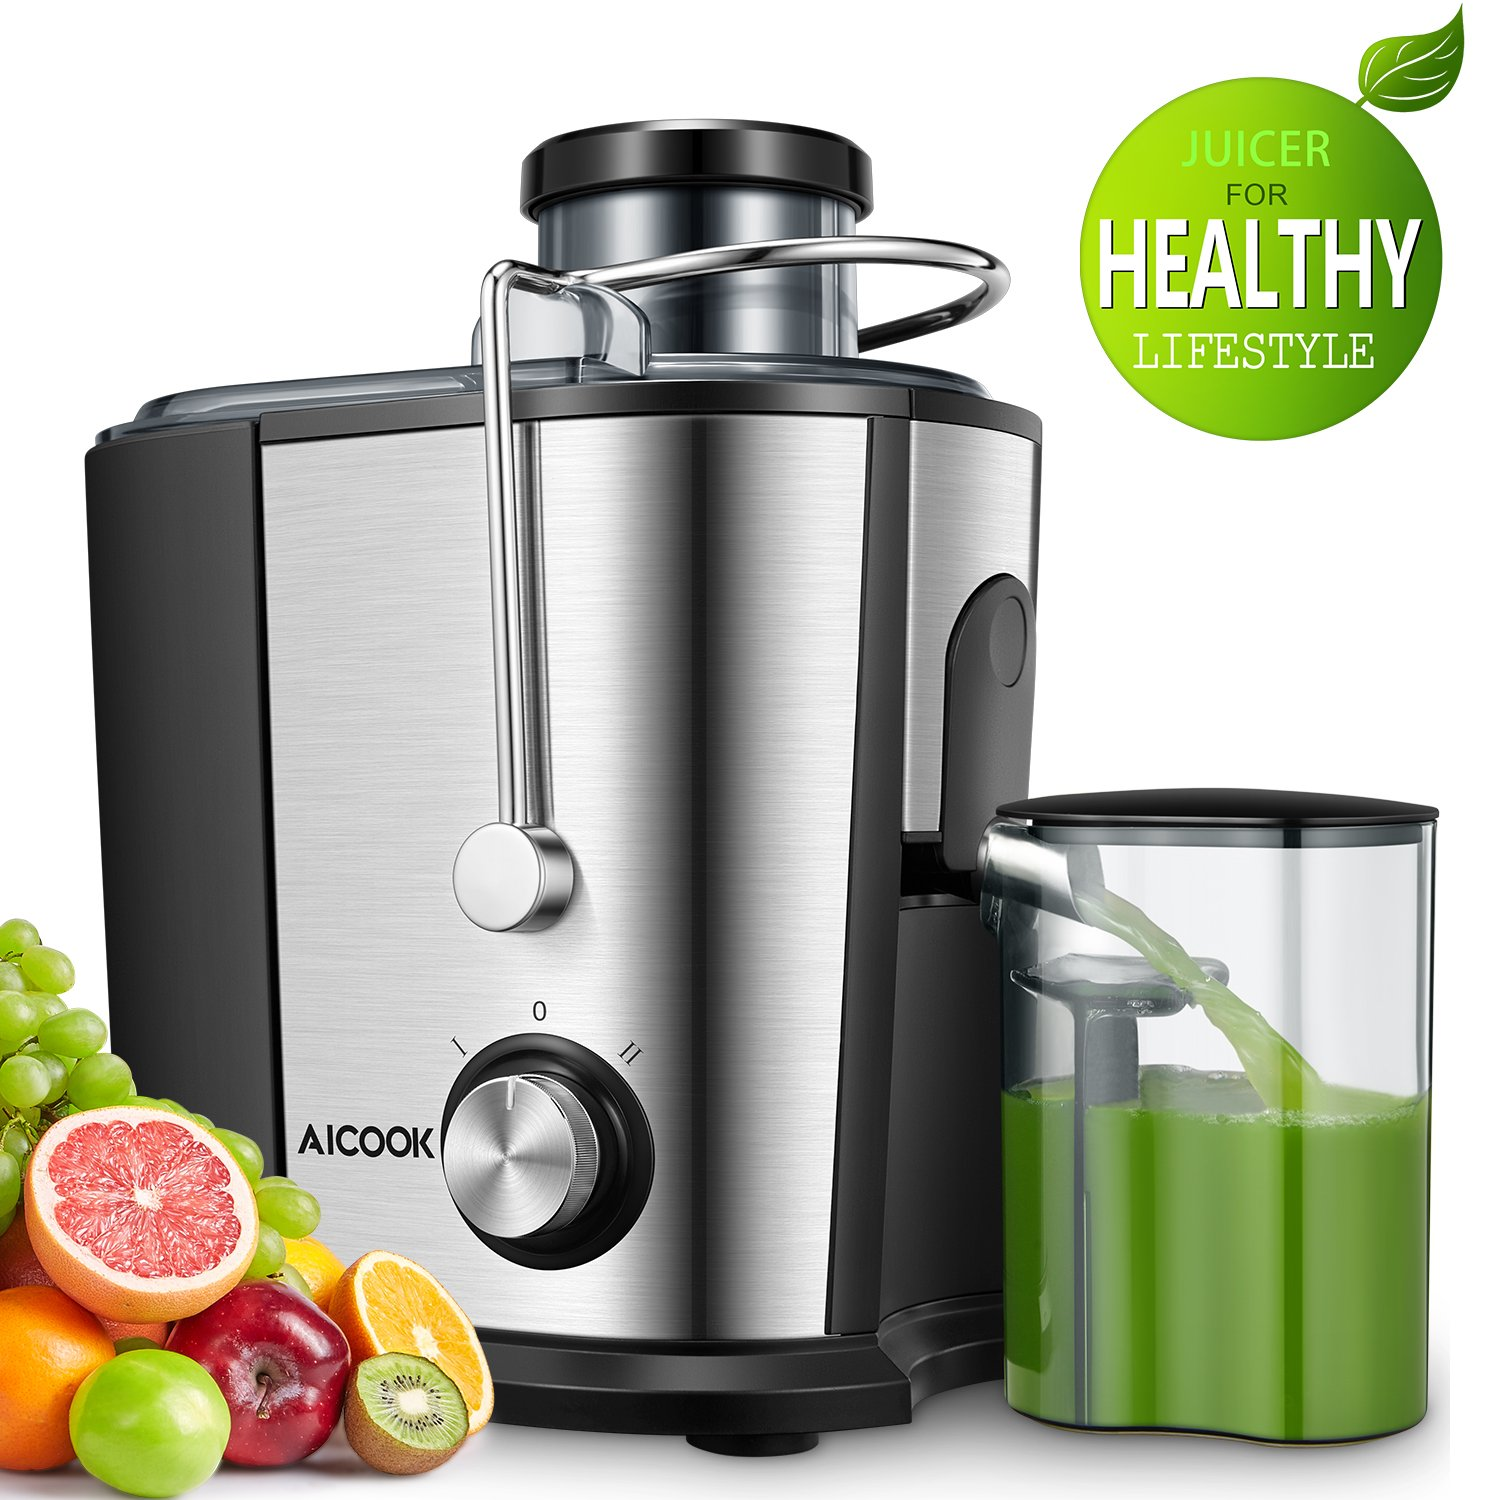 Juicer Centrifugal Juicer, Aicook Wide Mouth Juice Extractor Juicers for Whole Fruit and Vegetable, BPA-Free Food Grade Stainless Steel, Dual Speed Setting Juicer Machine with Anti-drip Function